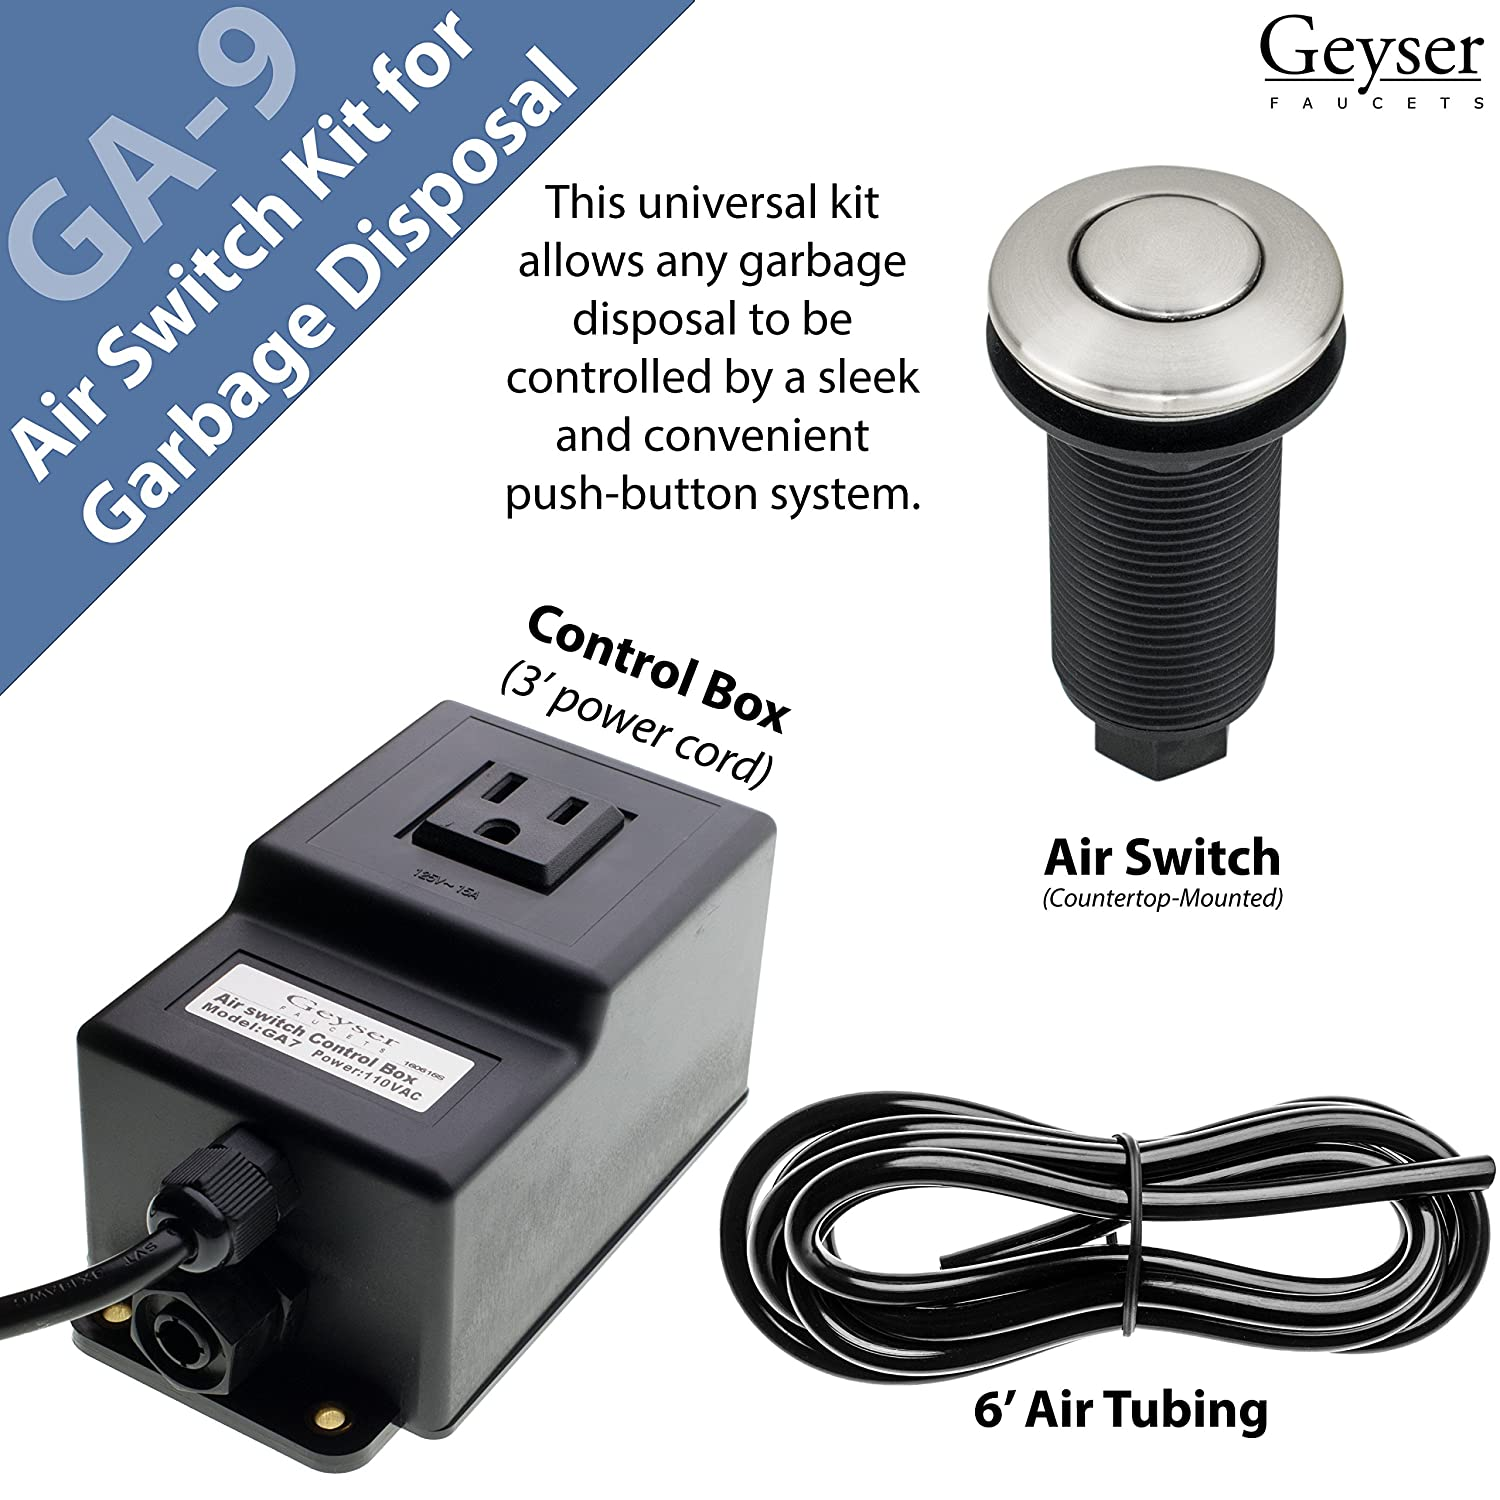 Geyser Ga7 Air Swicth Control Box Wiring A Switch To Garbage Disposal